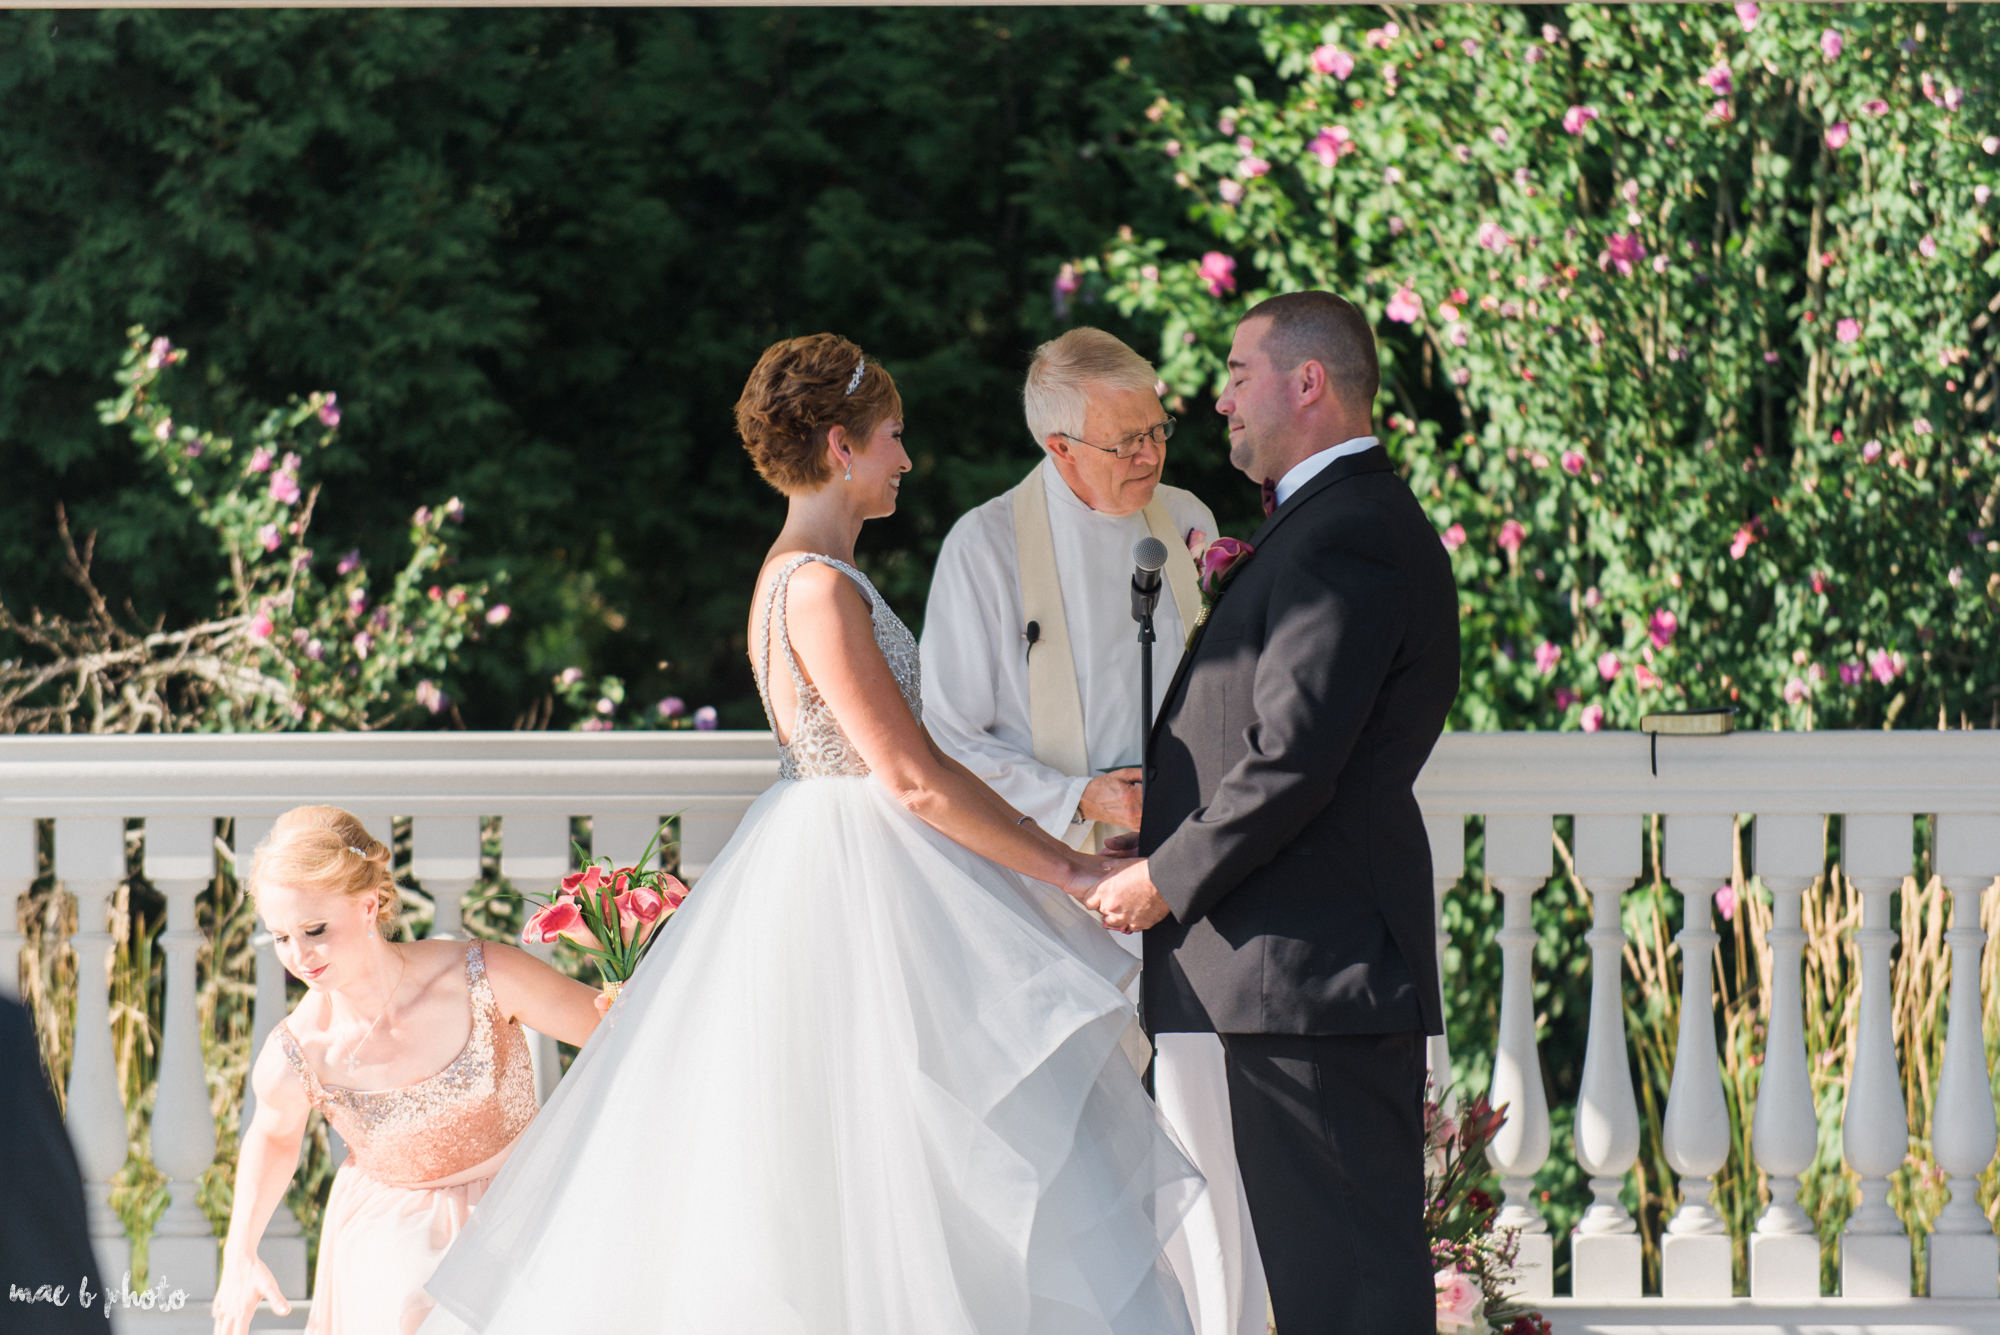 Mary Catherine & Chad's Elegant and Intimate Country Club Wedding at Squaw Creek in Youngstown Ohio by Mae B Photo-51.jpg